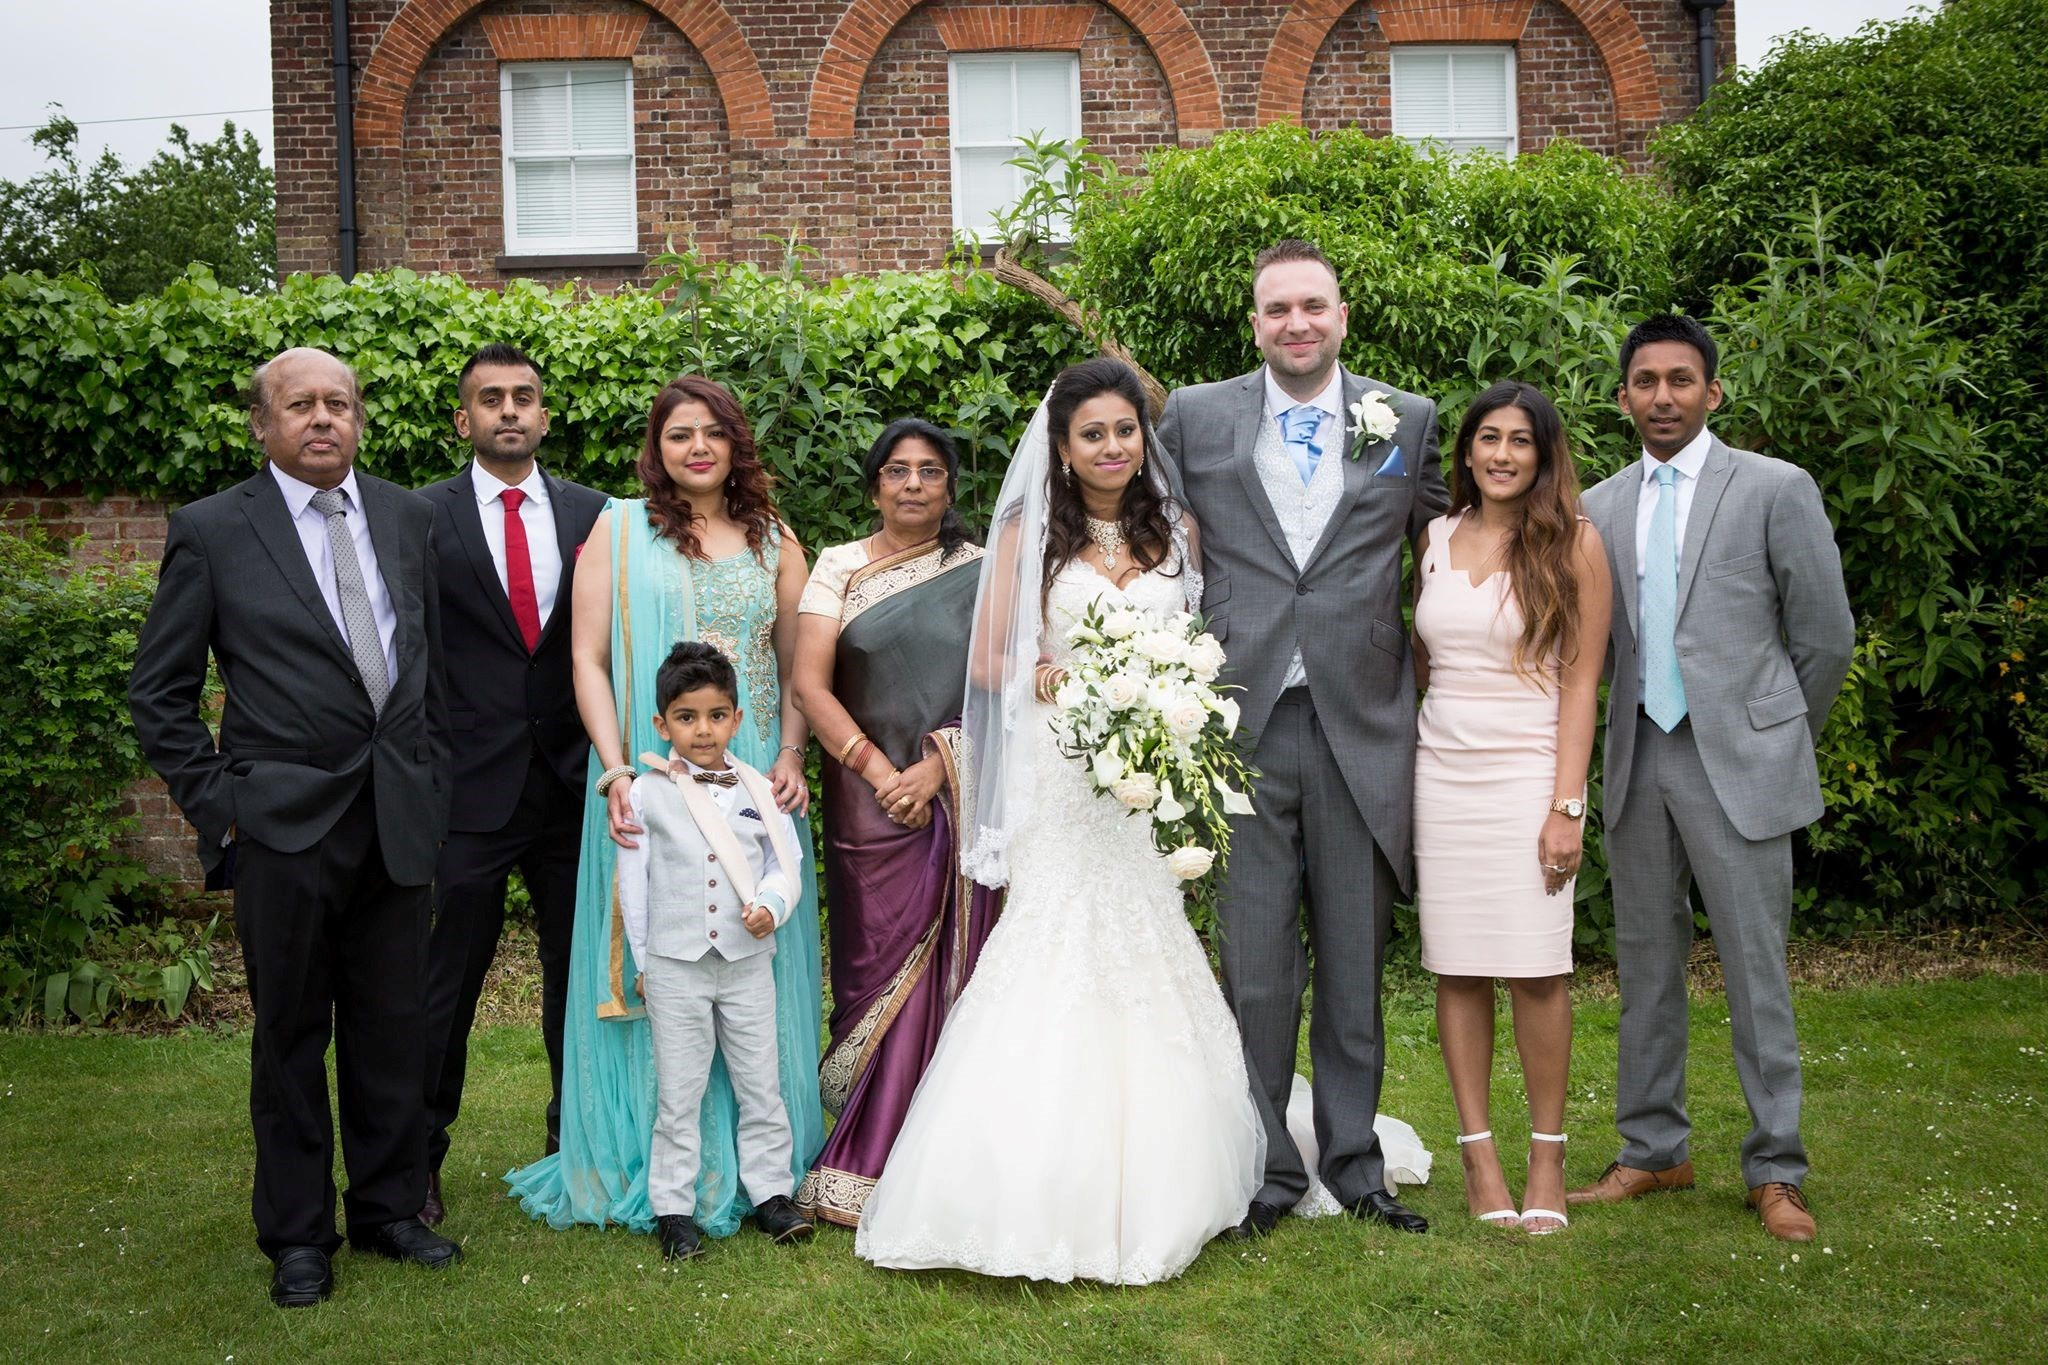 His much loved neice's Pia's wedding